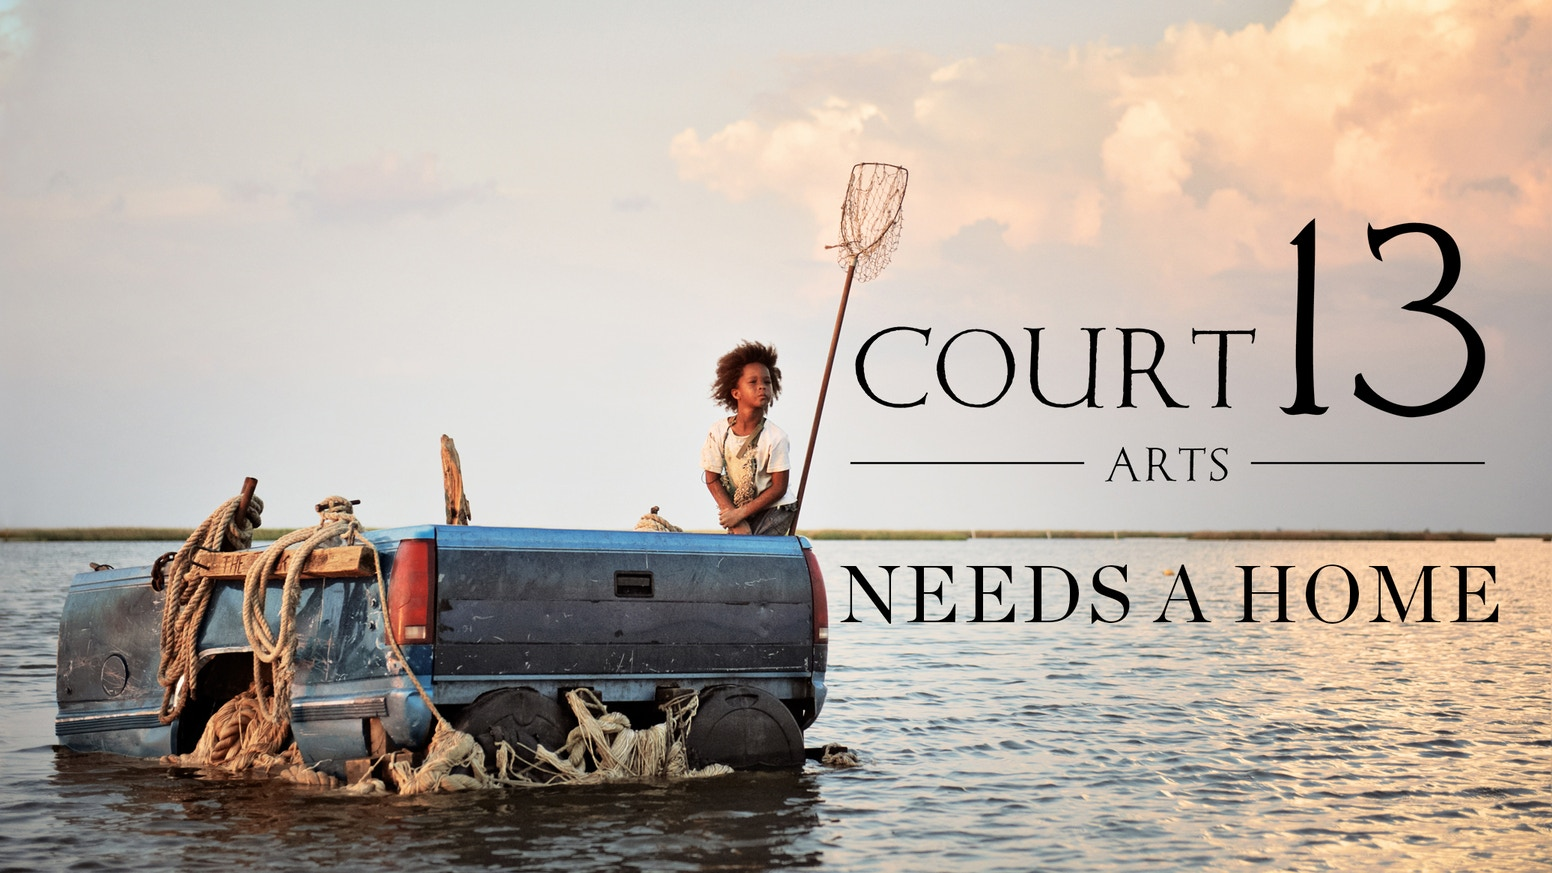 Help Court 13 Arts create a home for community-based art, filmmaking, and creativity in New Orleans and beyond!